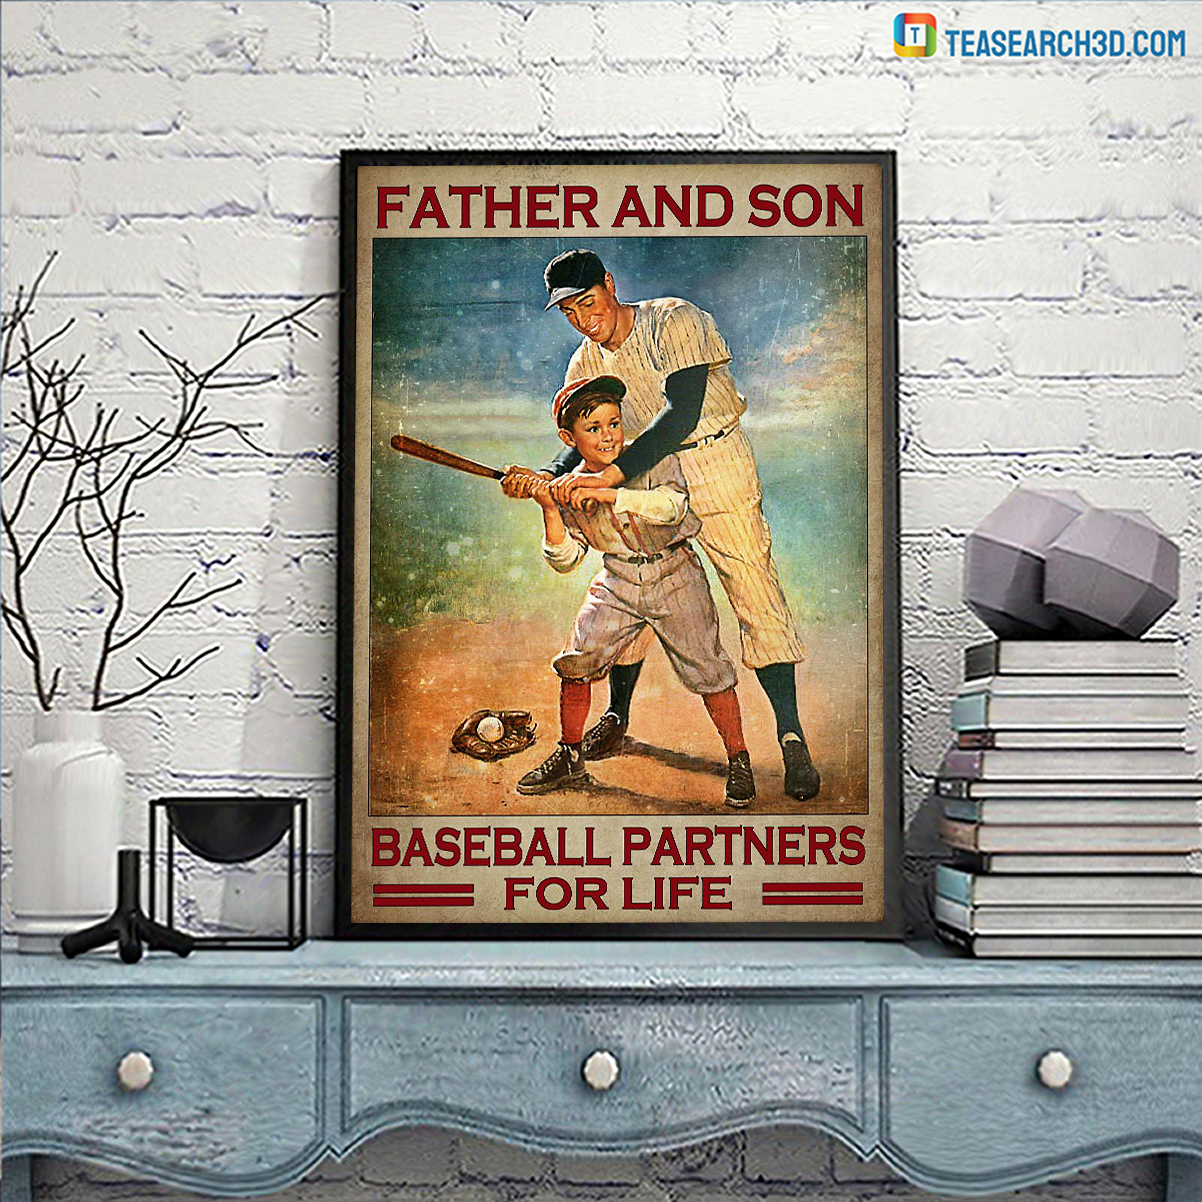 Father and son baseball partners for life poster A3